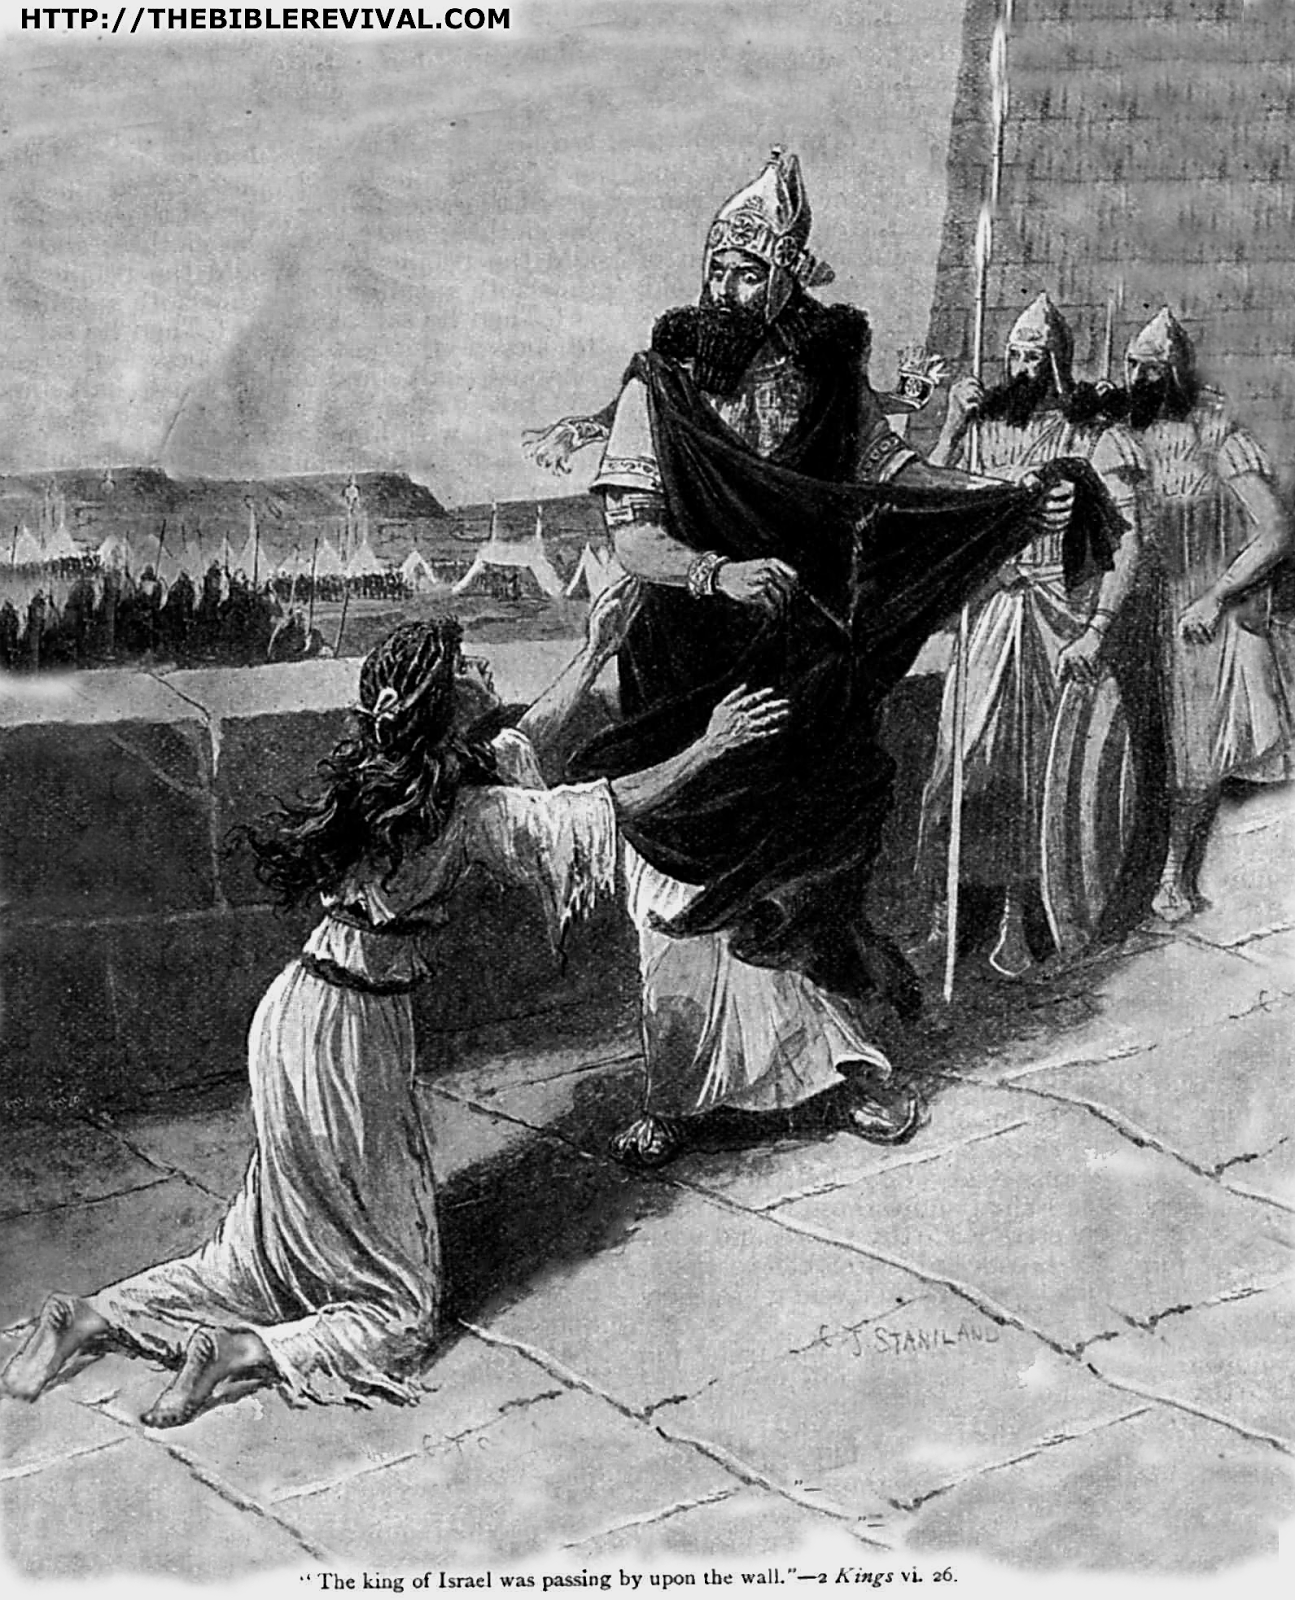 In her desperation, this lady (with her son), went to see the King (2 Kings 8:3), hoping for a suitable answer; for maybe small mercies.